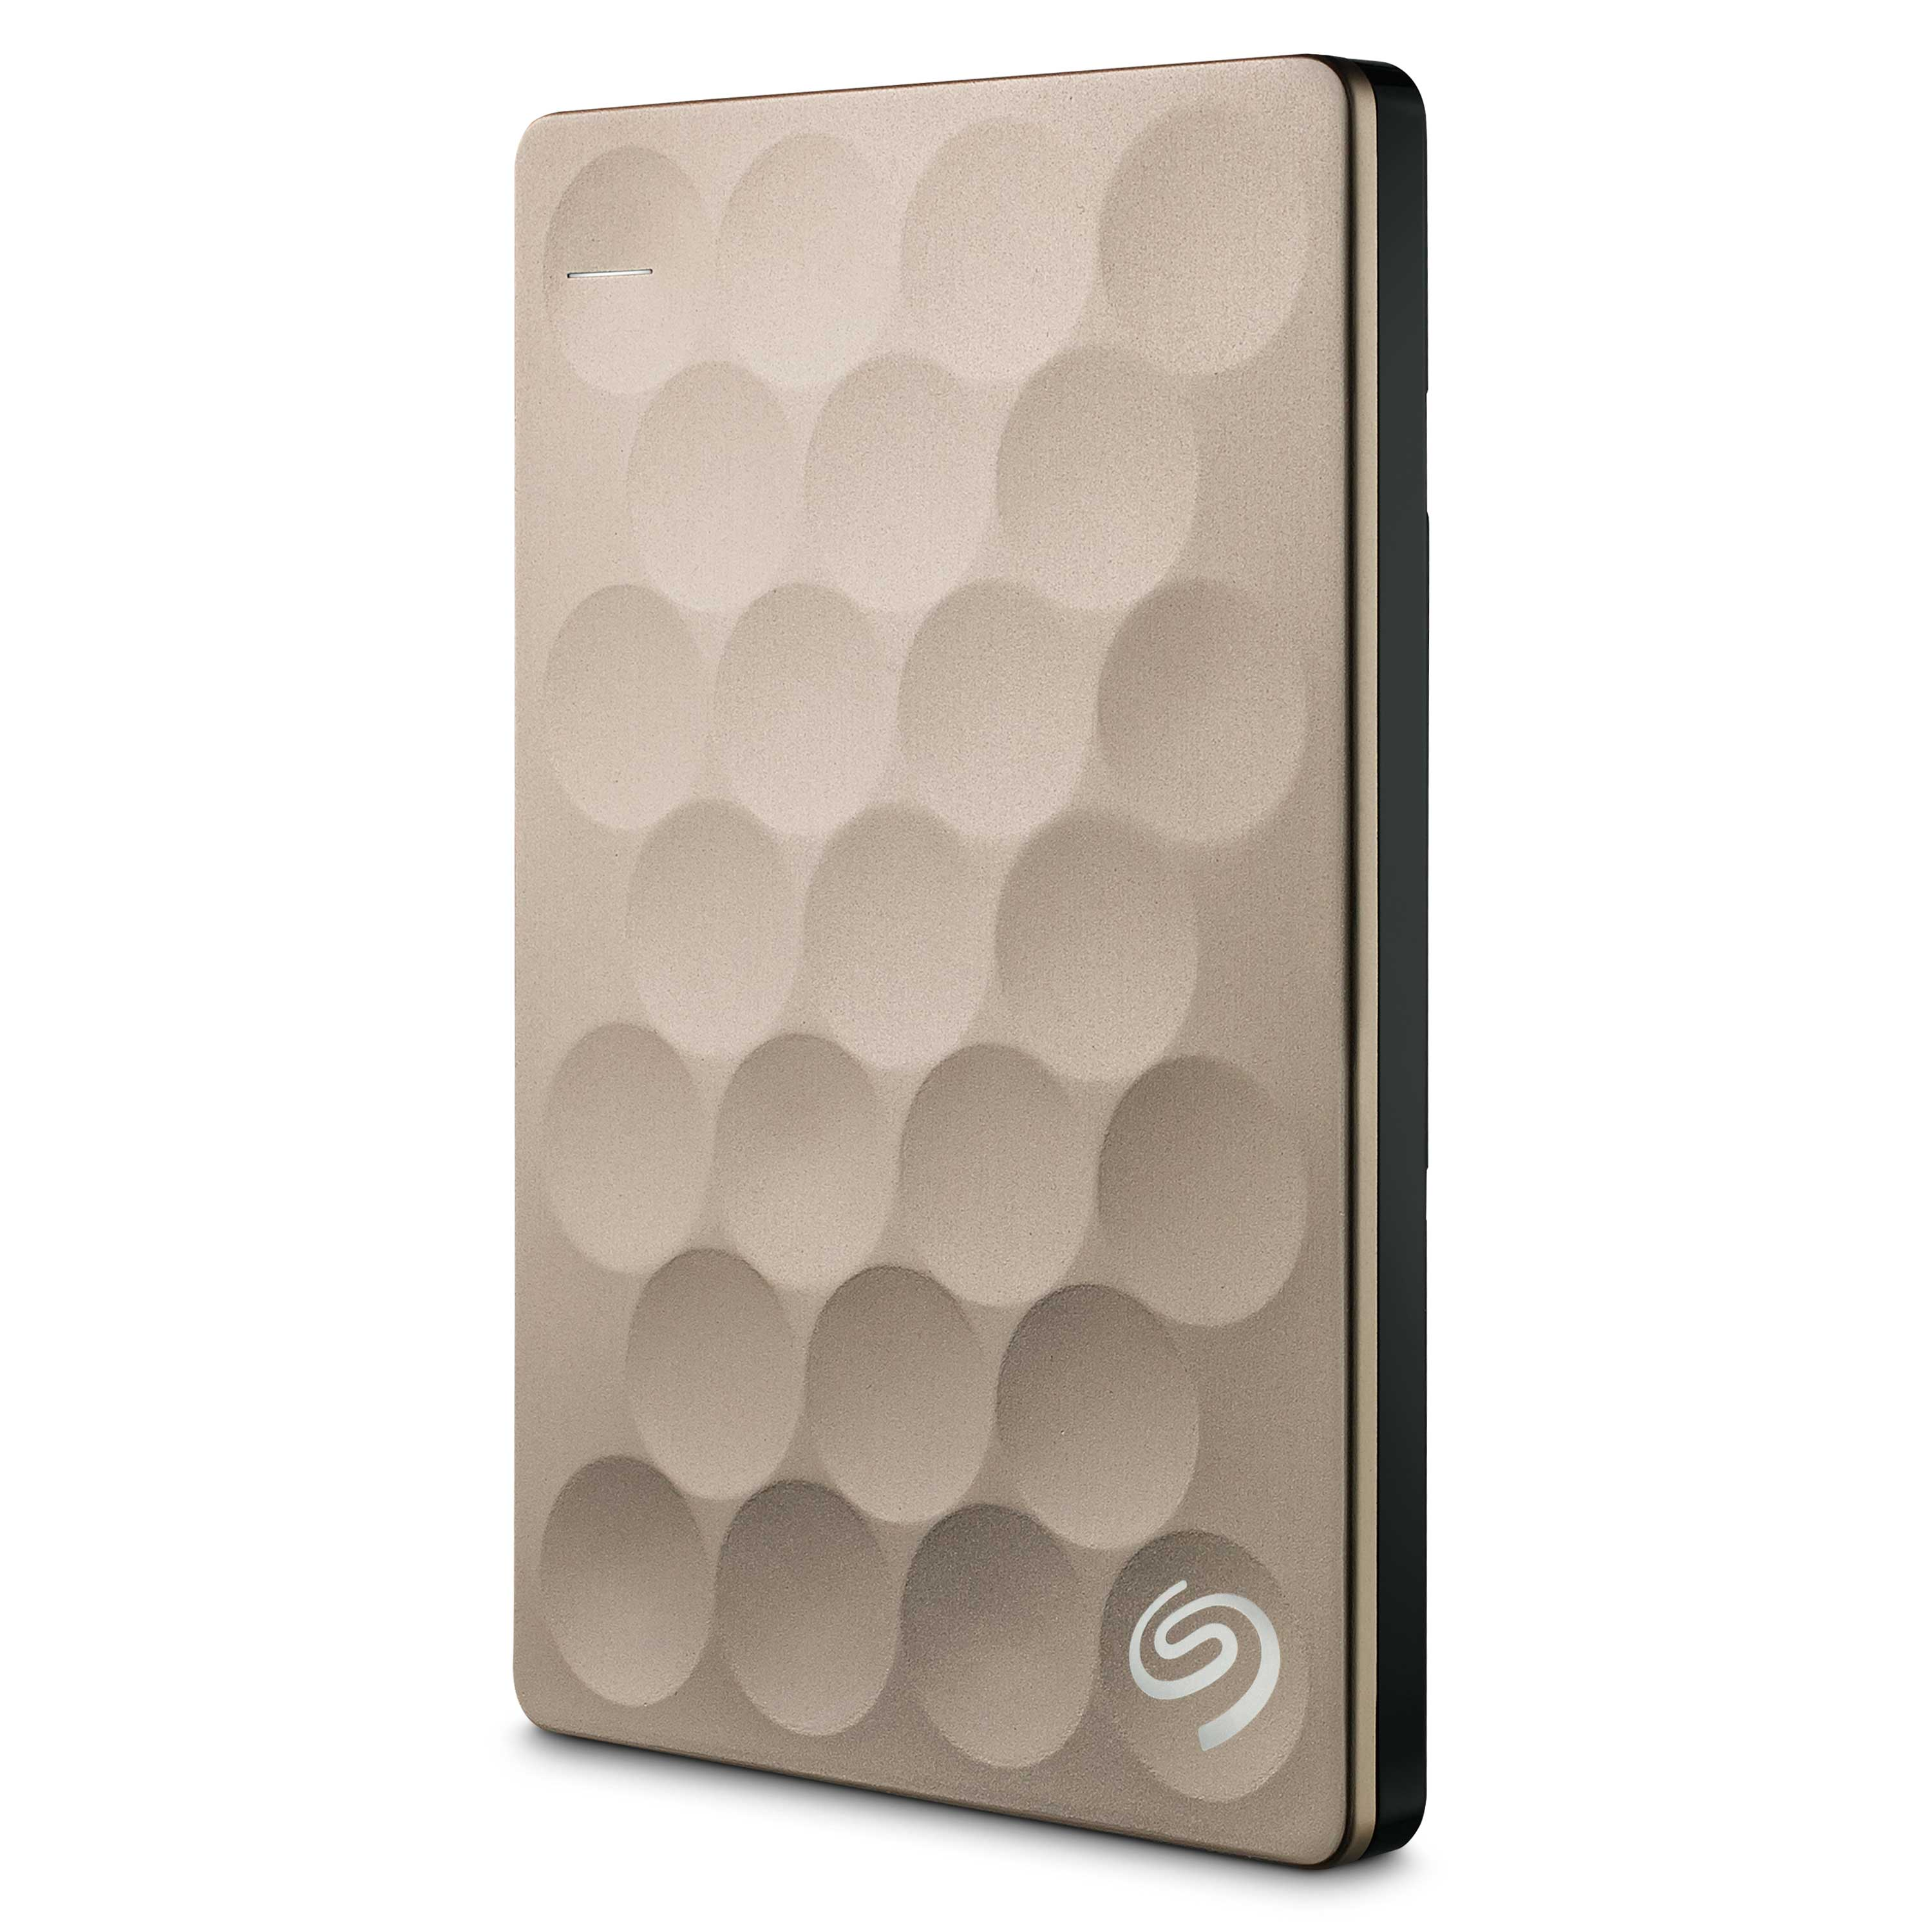 Seagate Launches Worlds Thinnest 2tb Mobile Hard Drive With Backup Harddisk Cctv Surveillance 1tb Download